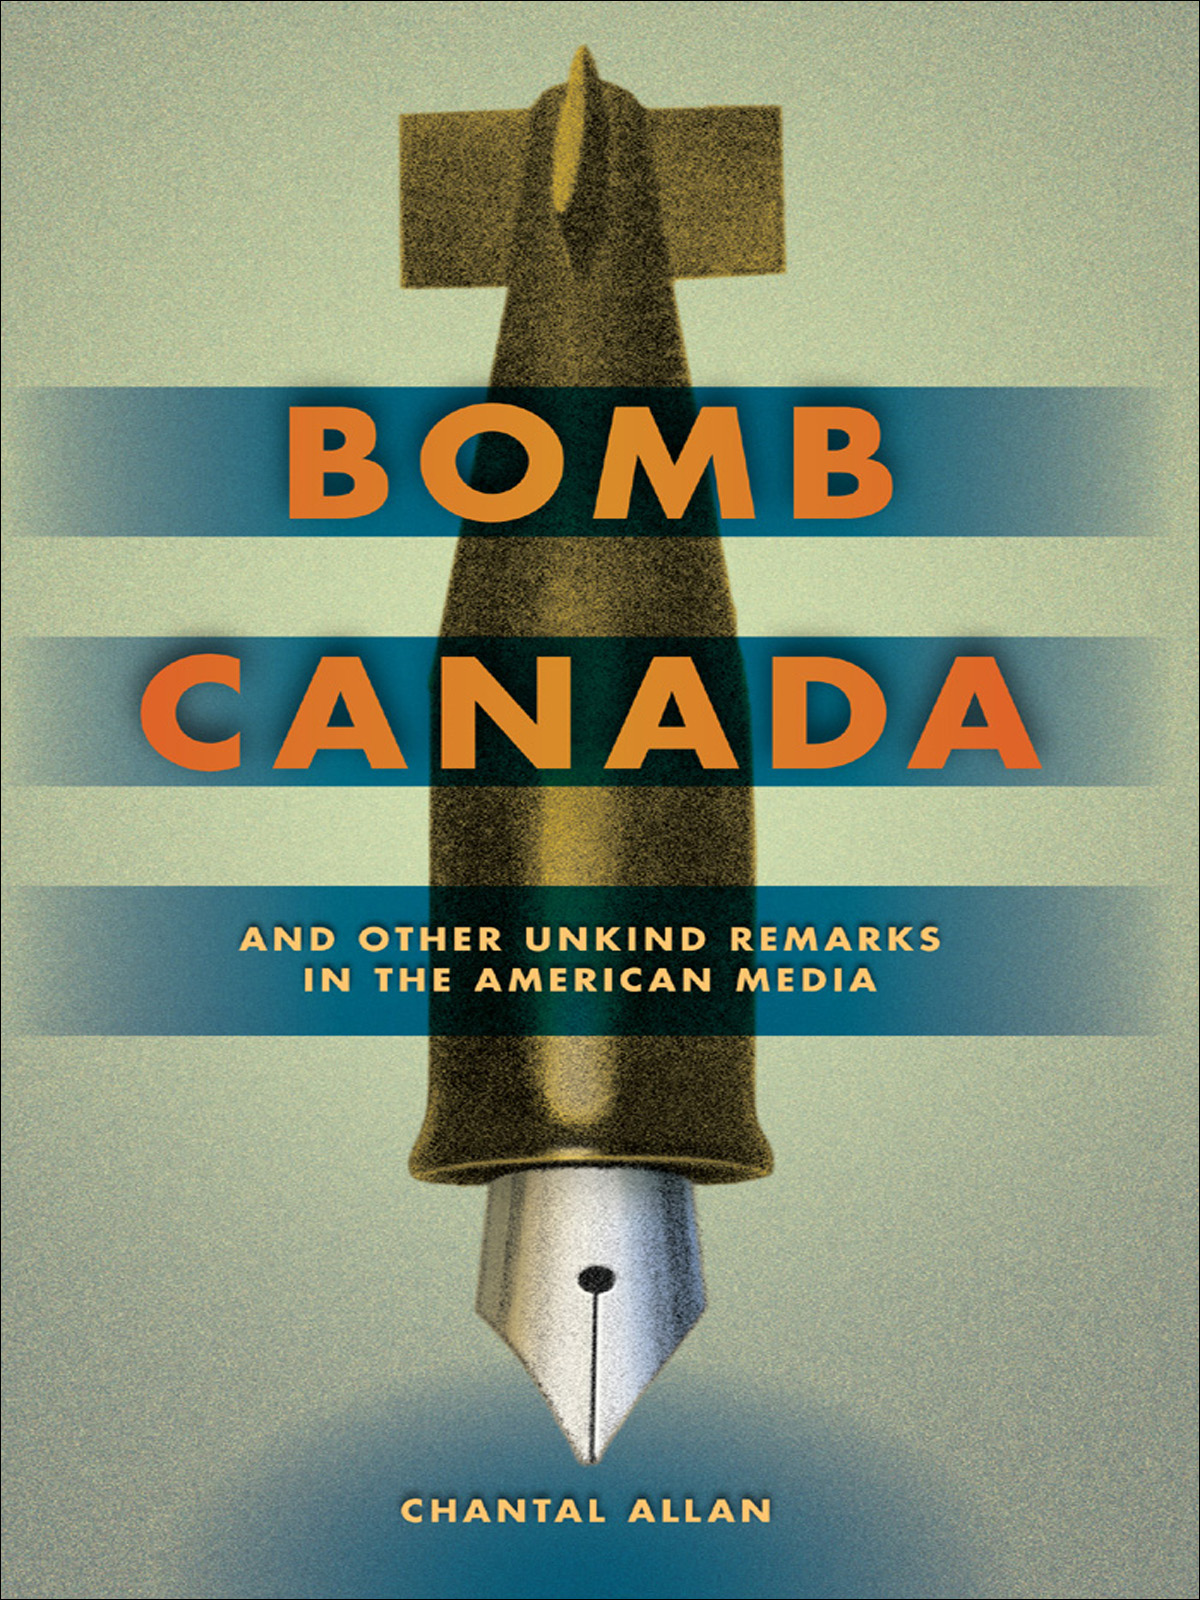 Bomb Canada and Other Unkind Remarks in the American Media